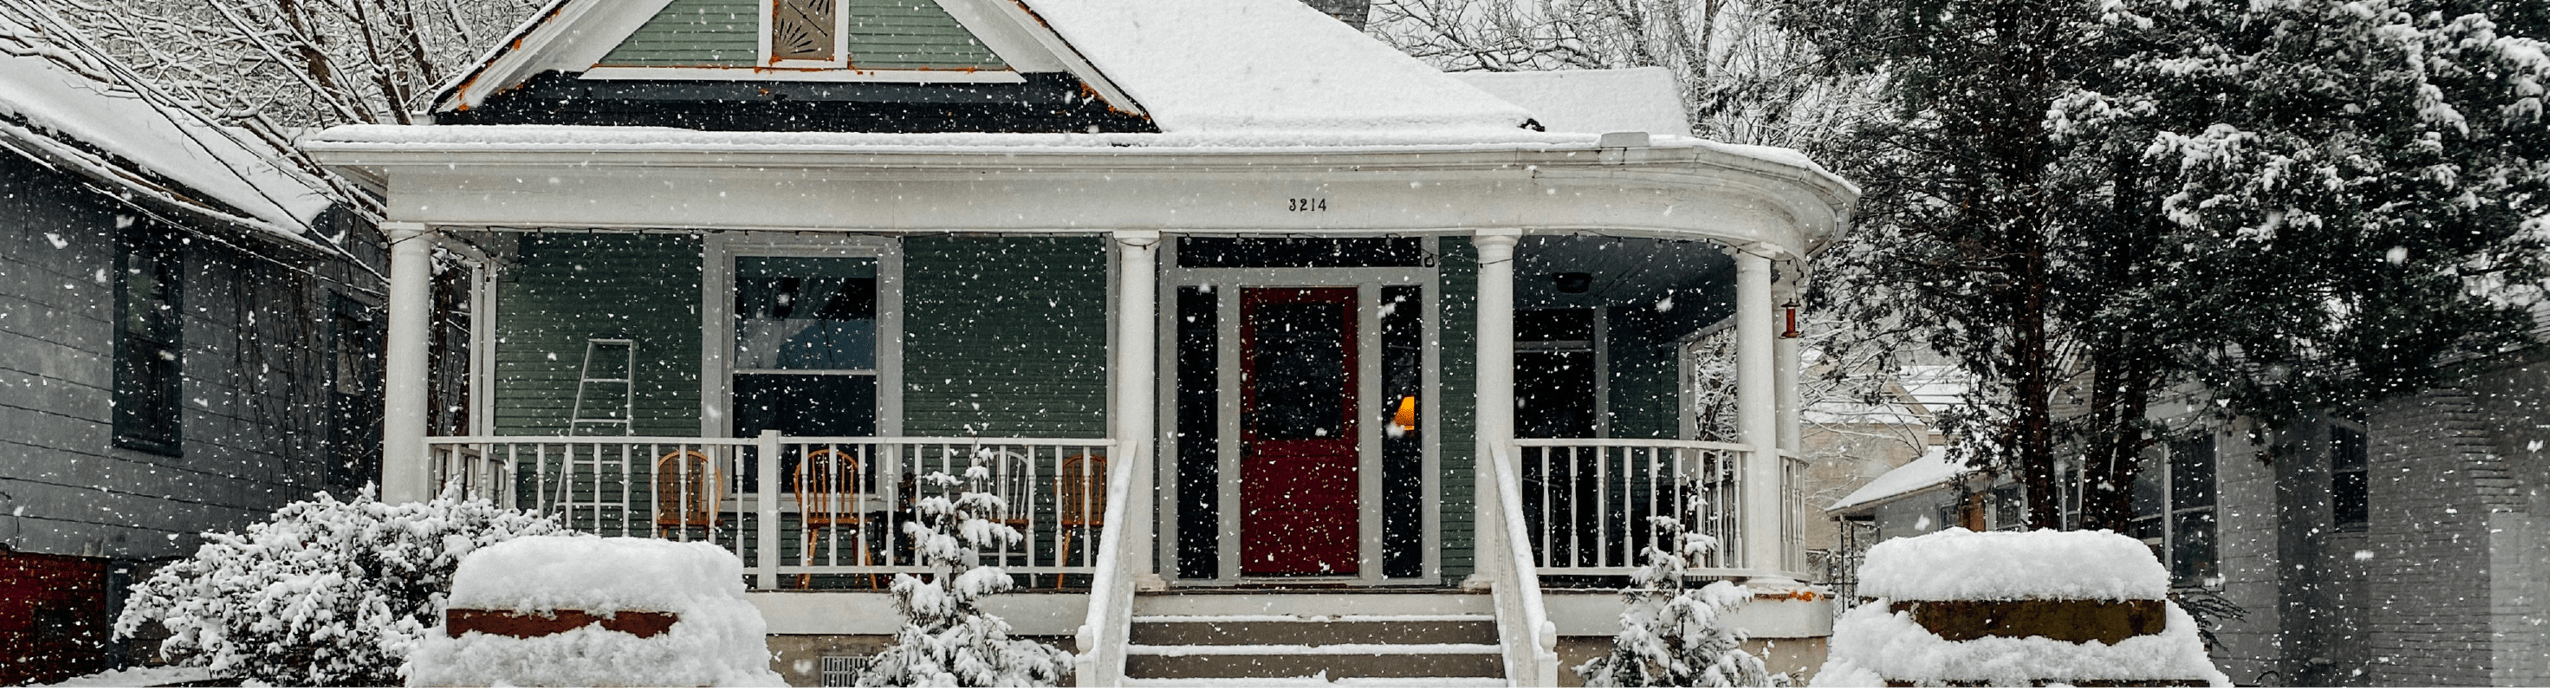 winter home snow